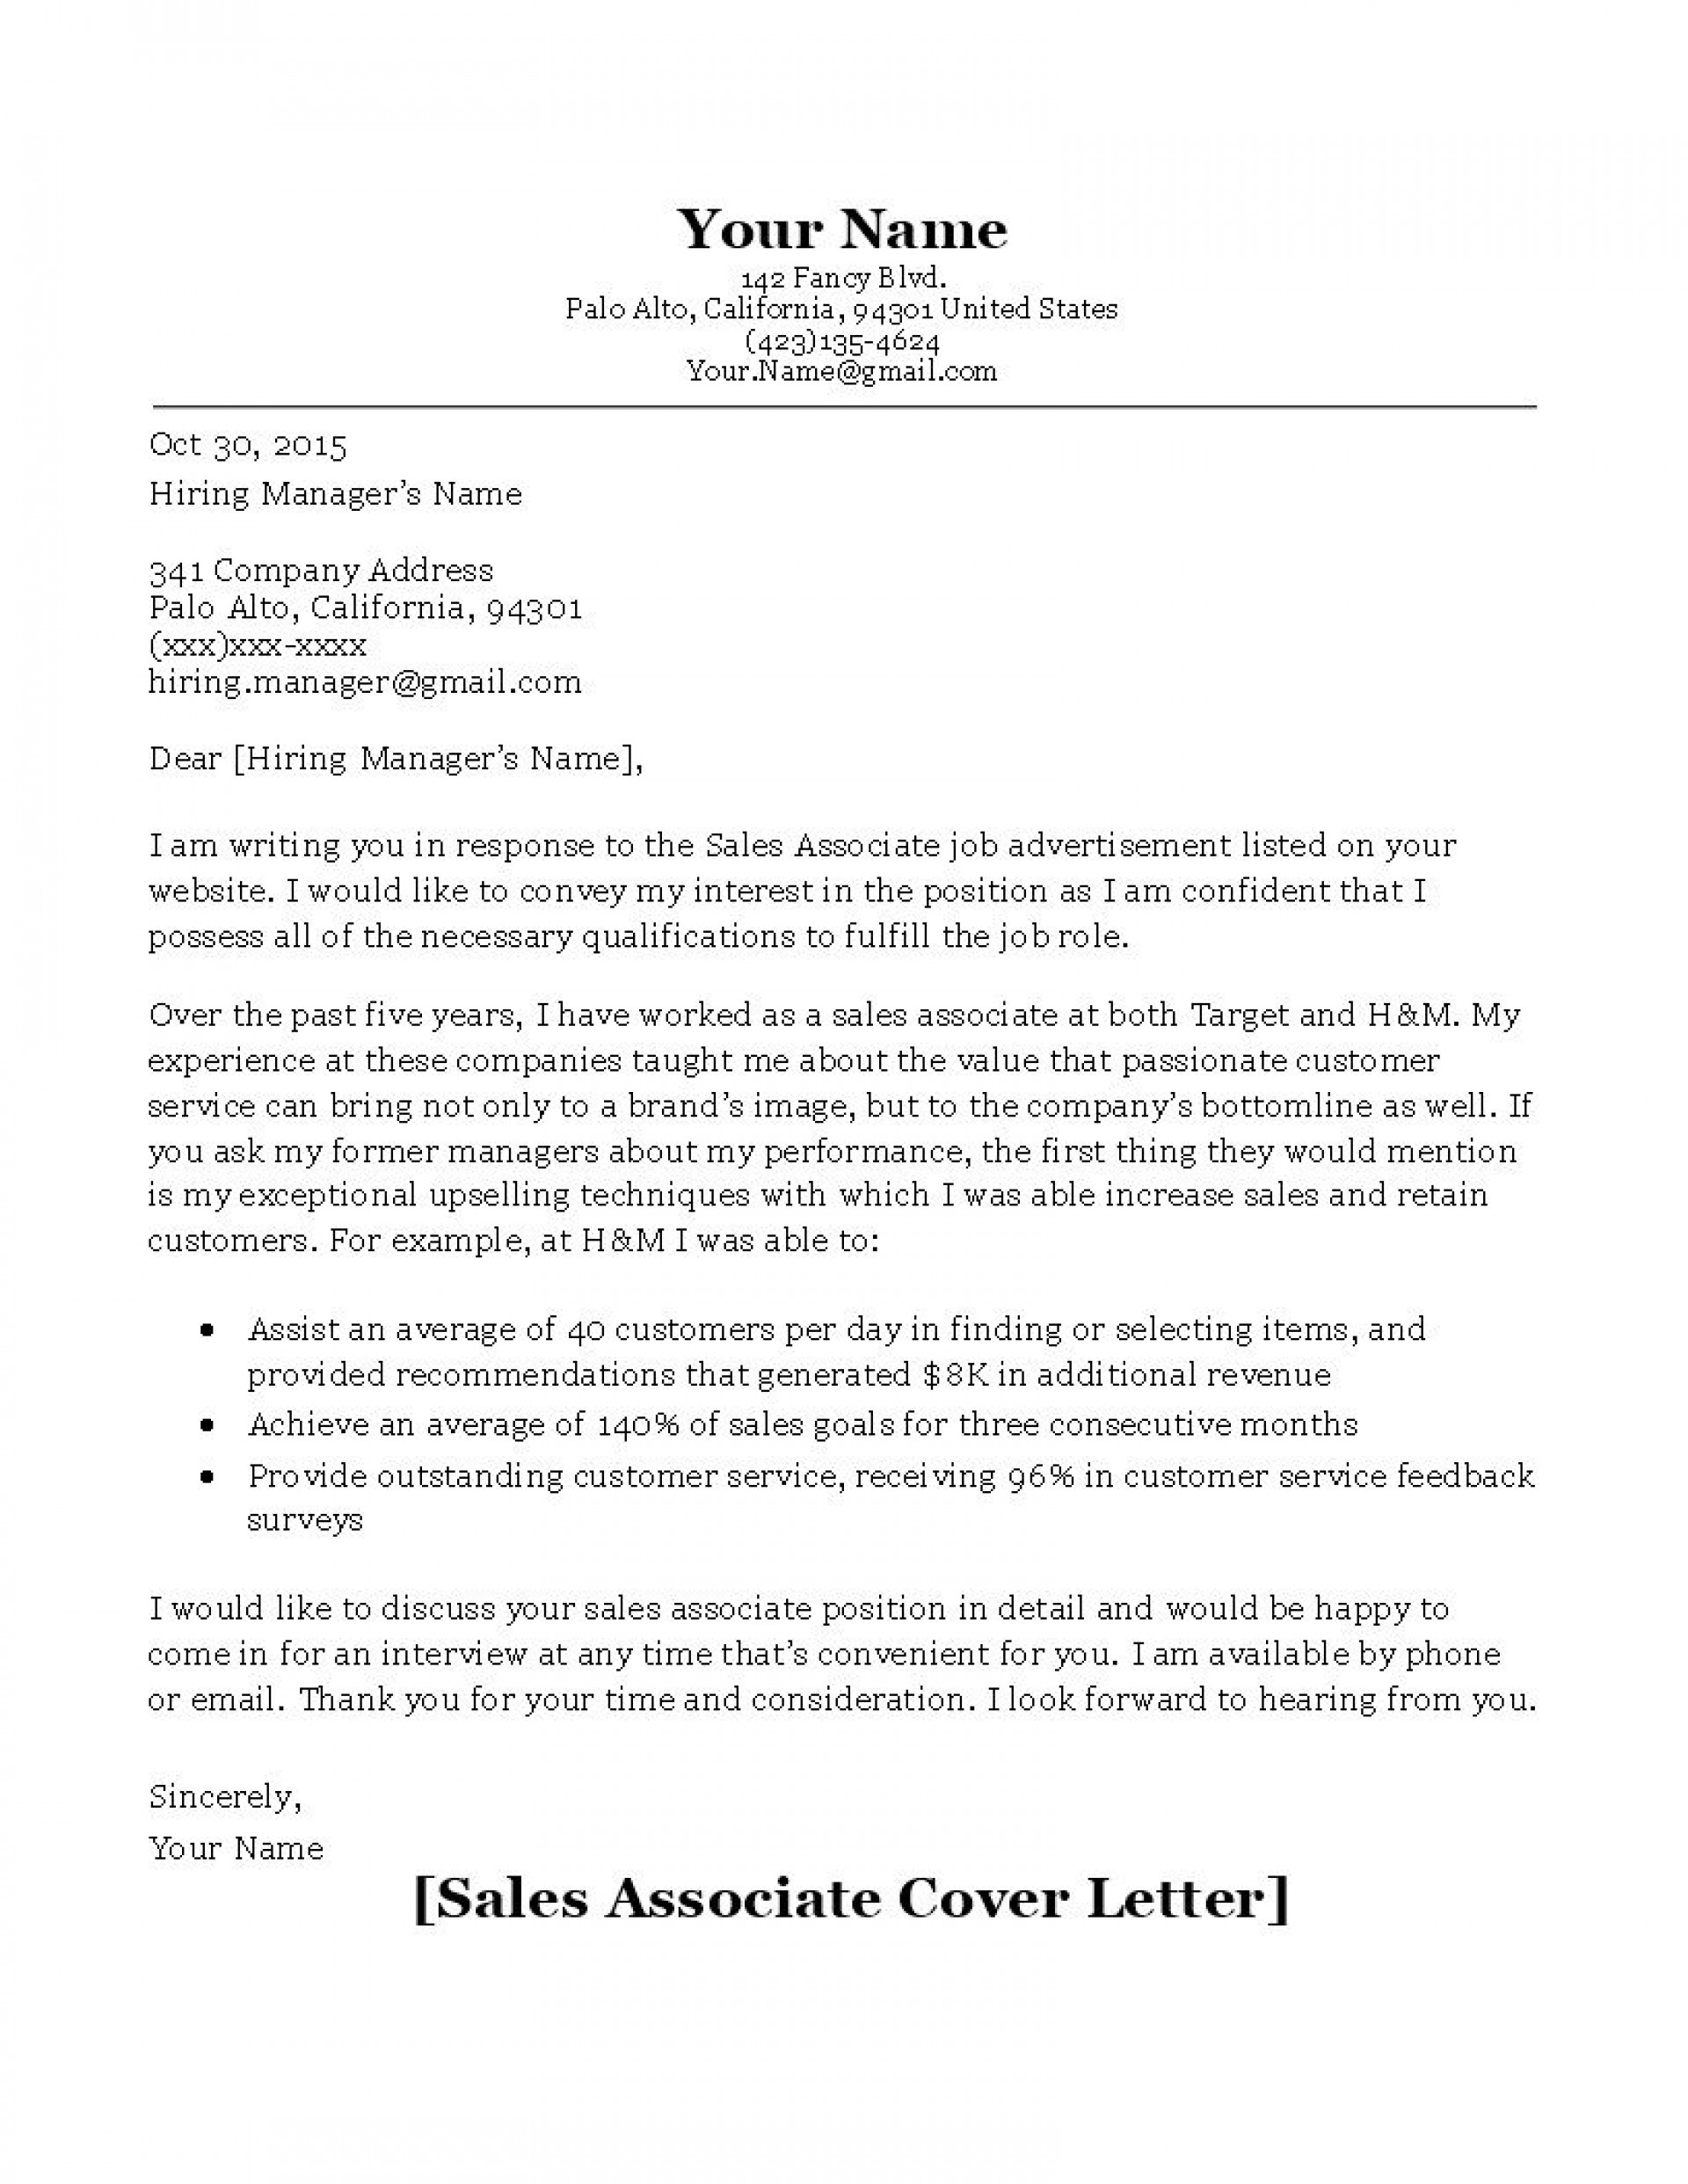 Sample Sales Letter For Services from www.addictionary.org